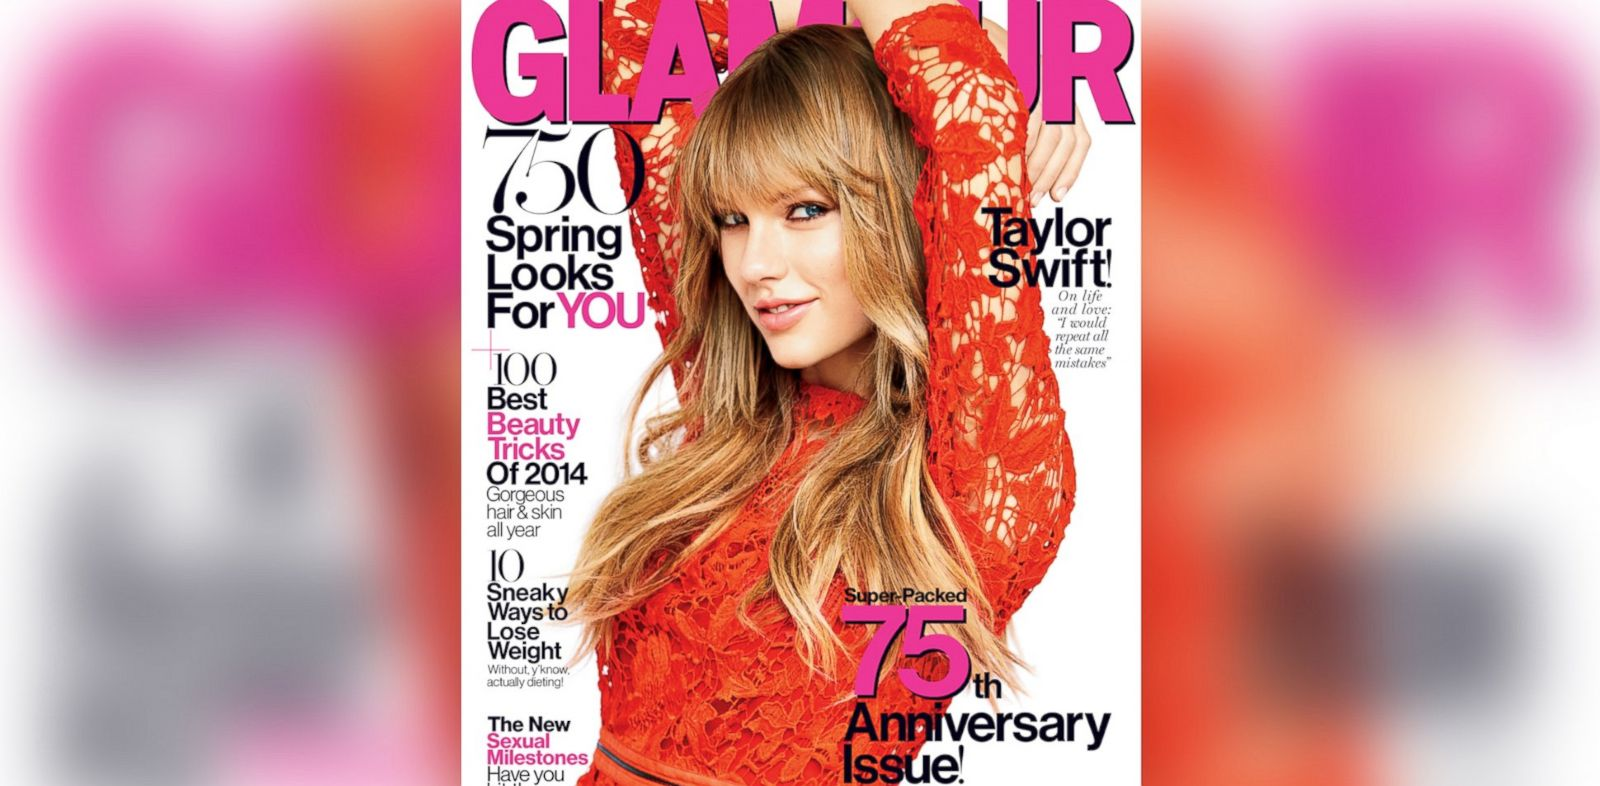 PHOTO: Taylor Swift, on the cover of the March 2014 issue of Glamour.